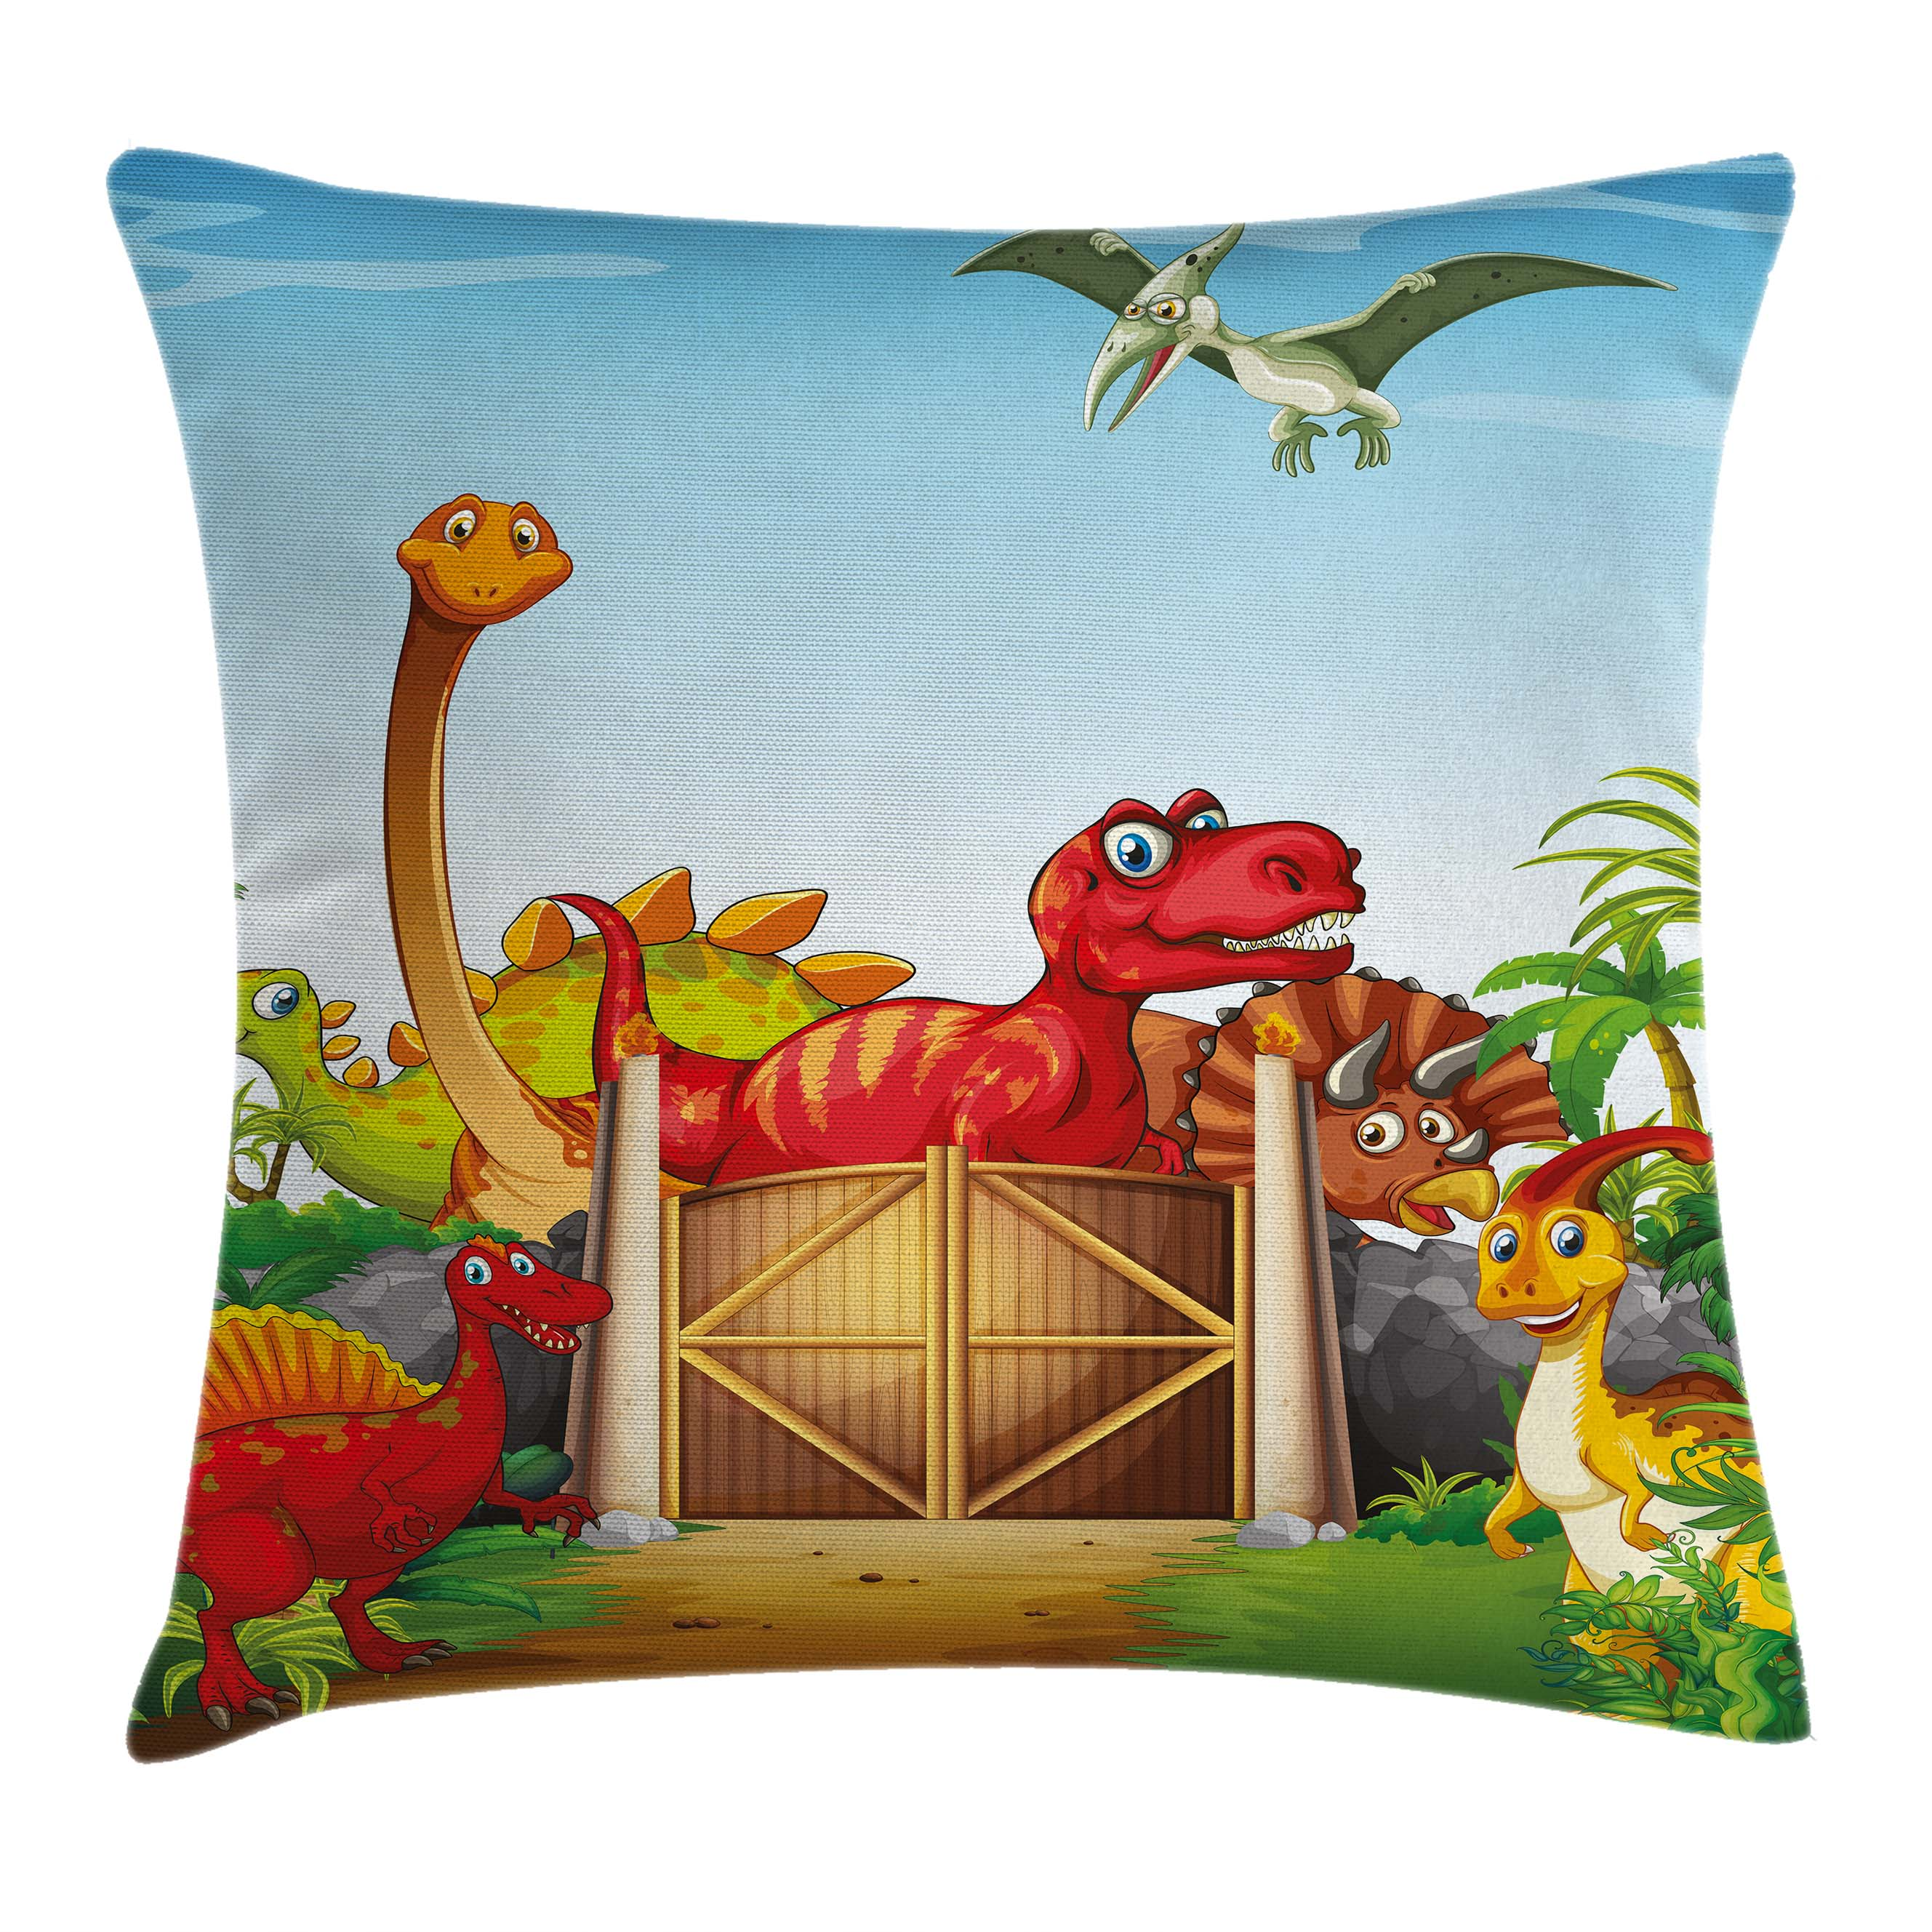 Kids Throw Pillow Cushion Cover, Cartoon Style Cute Dinosaurs in a Dino Park Jungle Trees Wildlife Habitat Illustration, Decorative Square Accent Pillow Case, 18 X 18 Inches, Multicolor, by Ambesonne